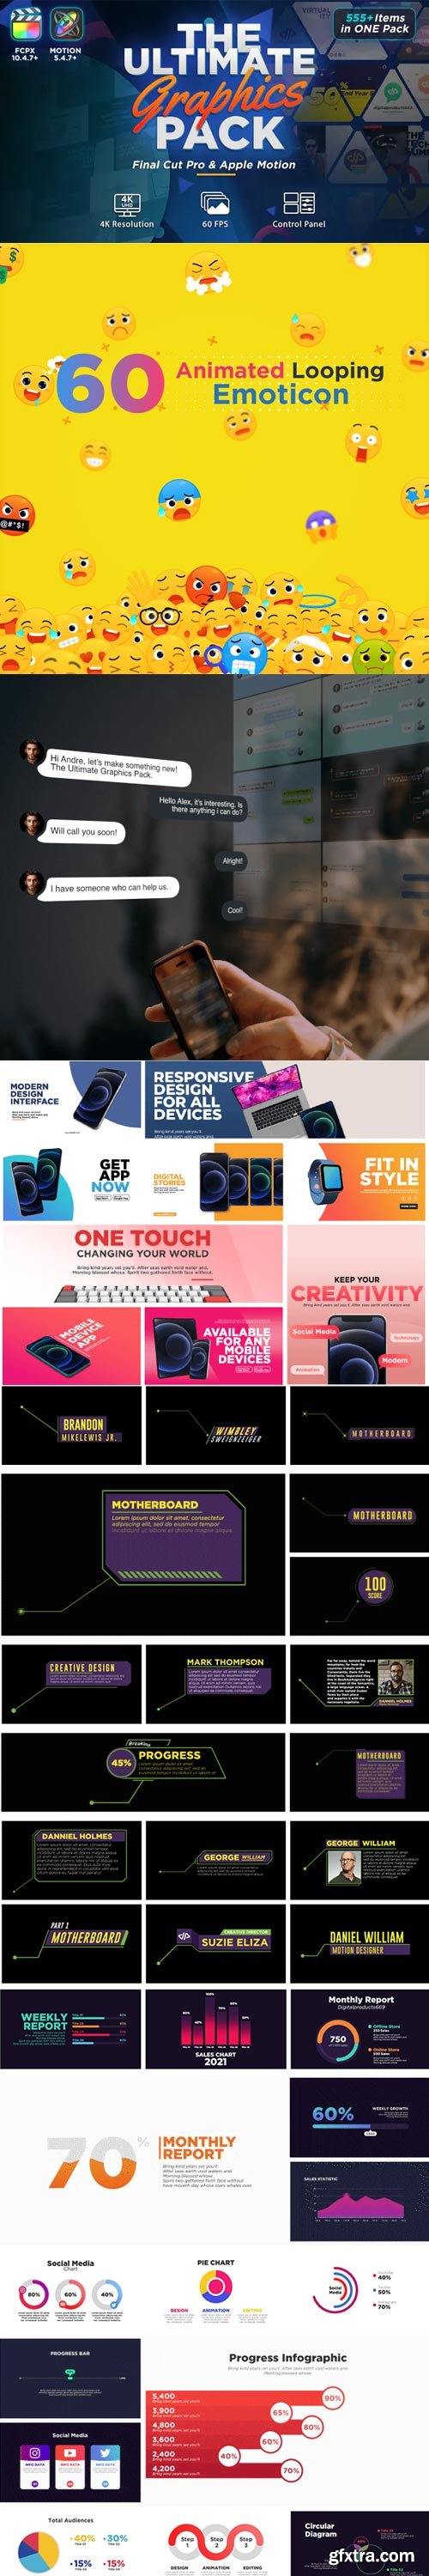 Videohive - The Ultimate Graphics Pack - Final Cut Pro X & Apple Motion - 31444521